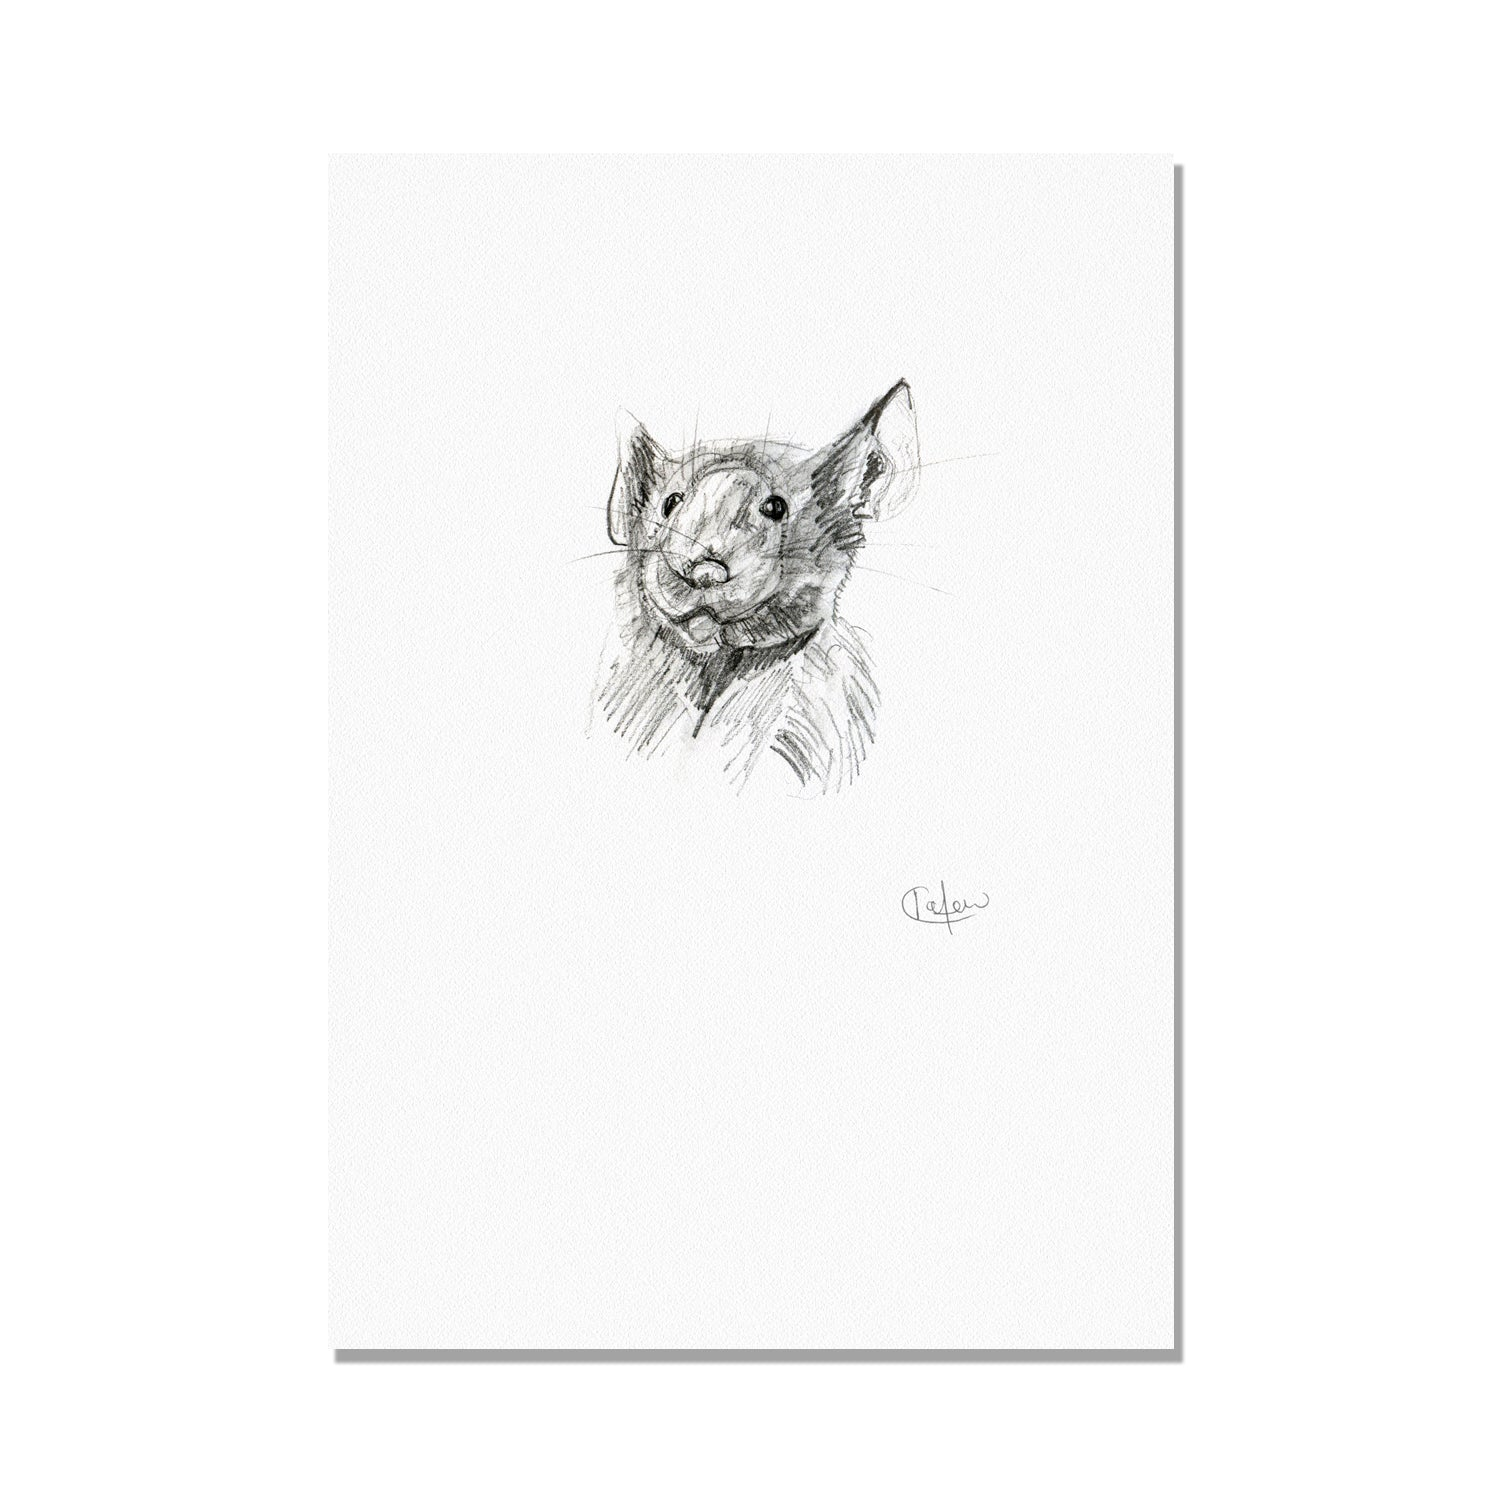 Cheeky Pencil Mouse Illustration Print by Kate Moby on OOSTOR.com